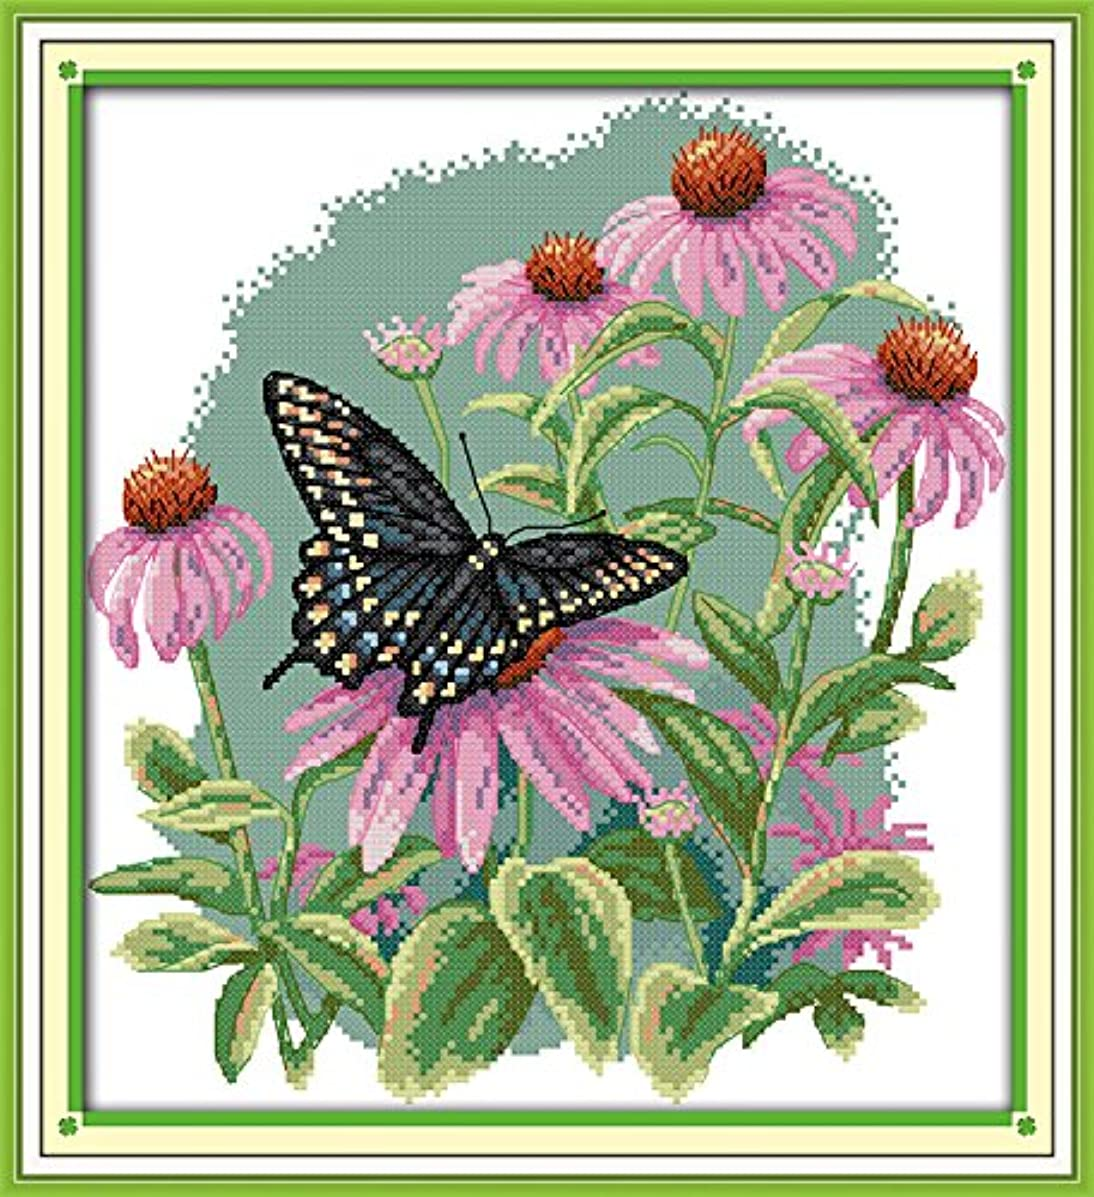 Joy Sunday Cross Stitch Kit 14CT Stamped Embroidery Kits Precise Printed Needlework - Butterfly Over Flowers (7) 31×34CM